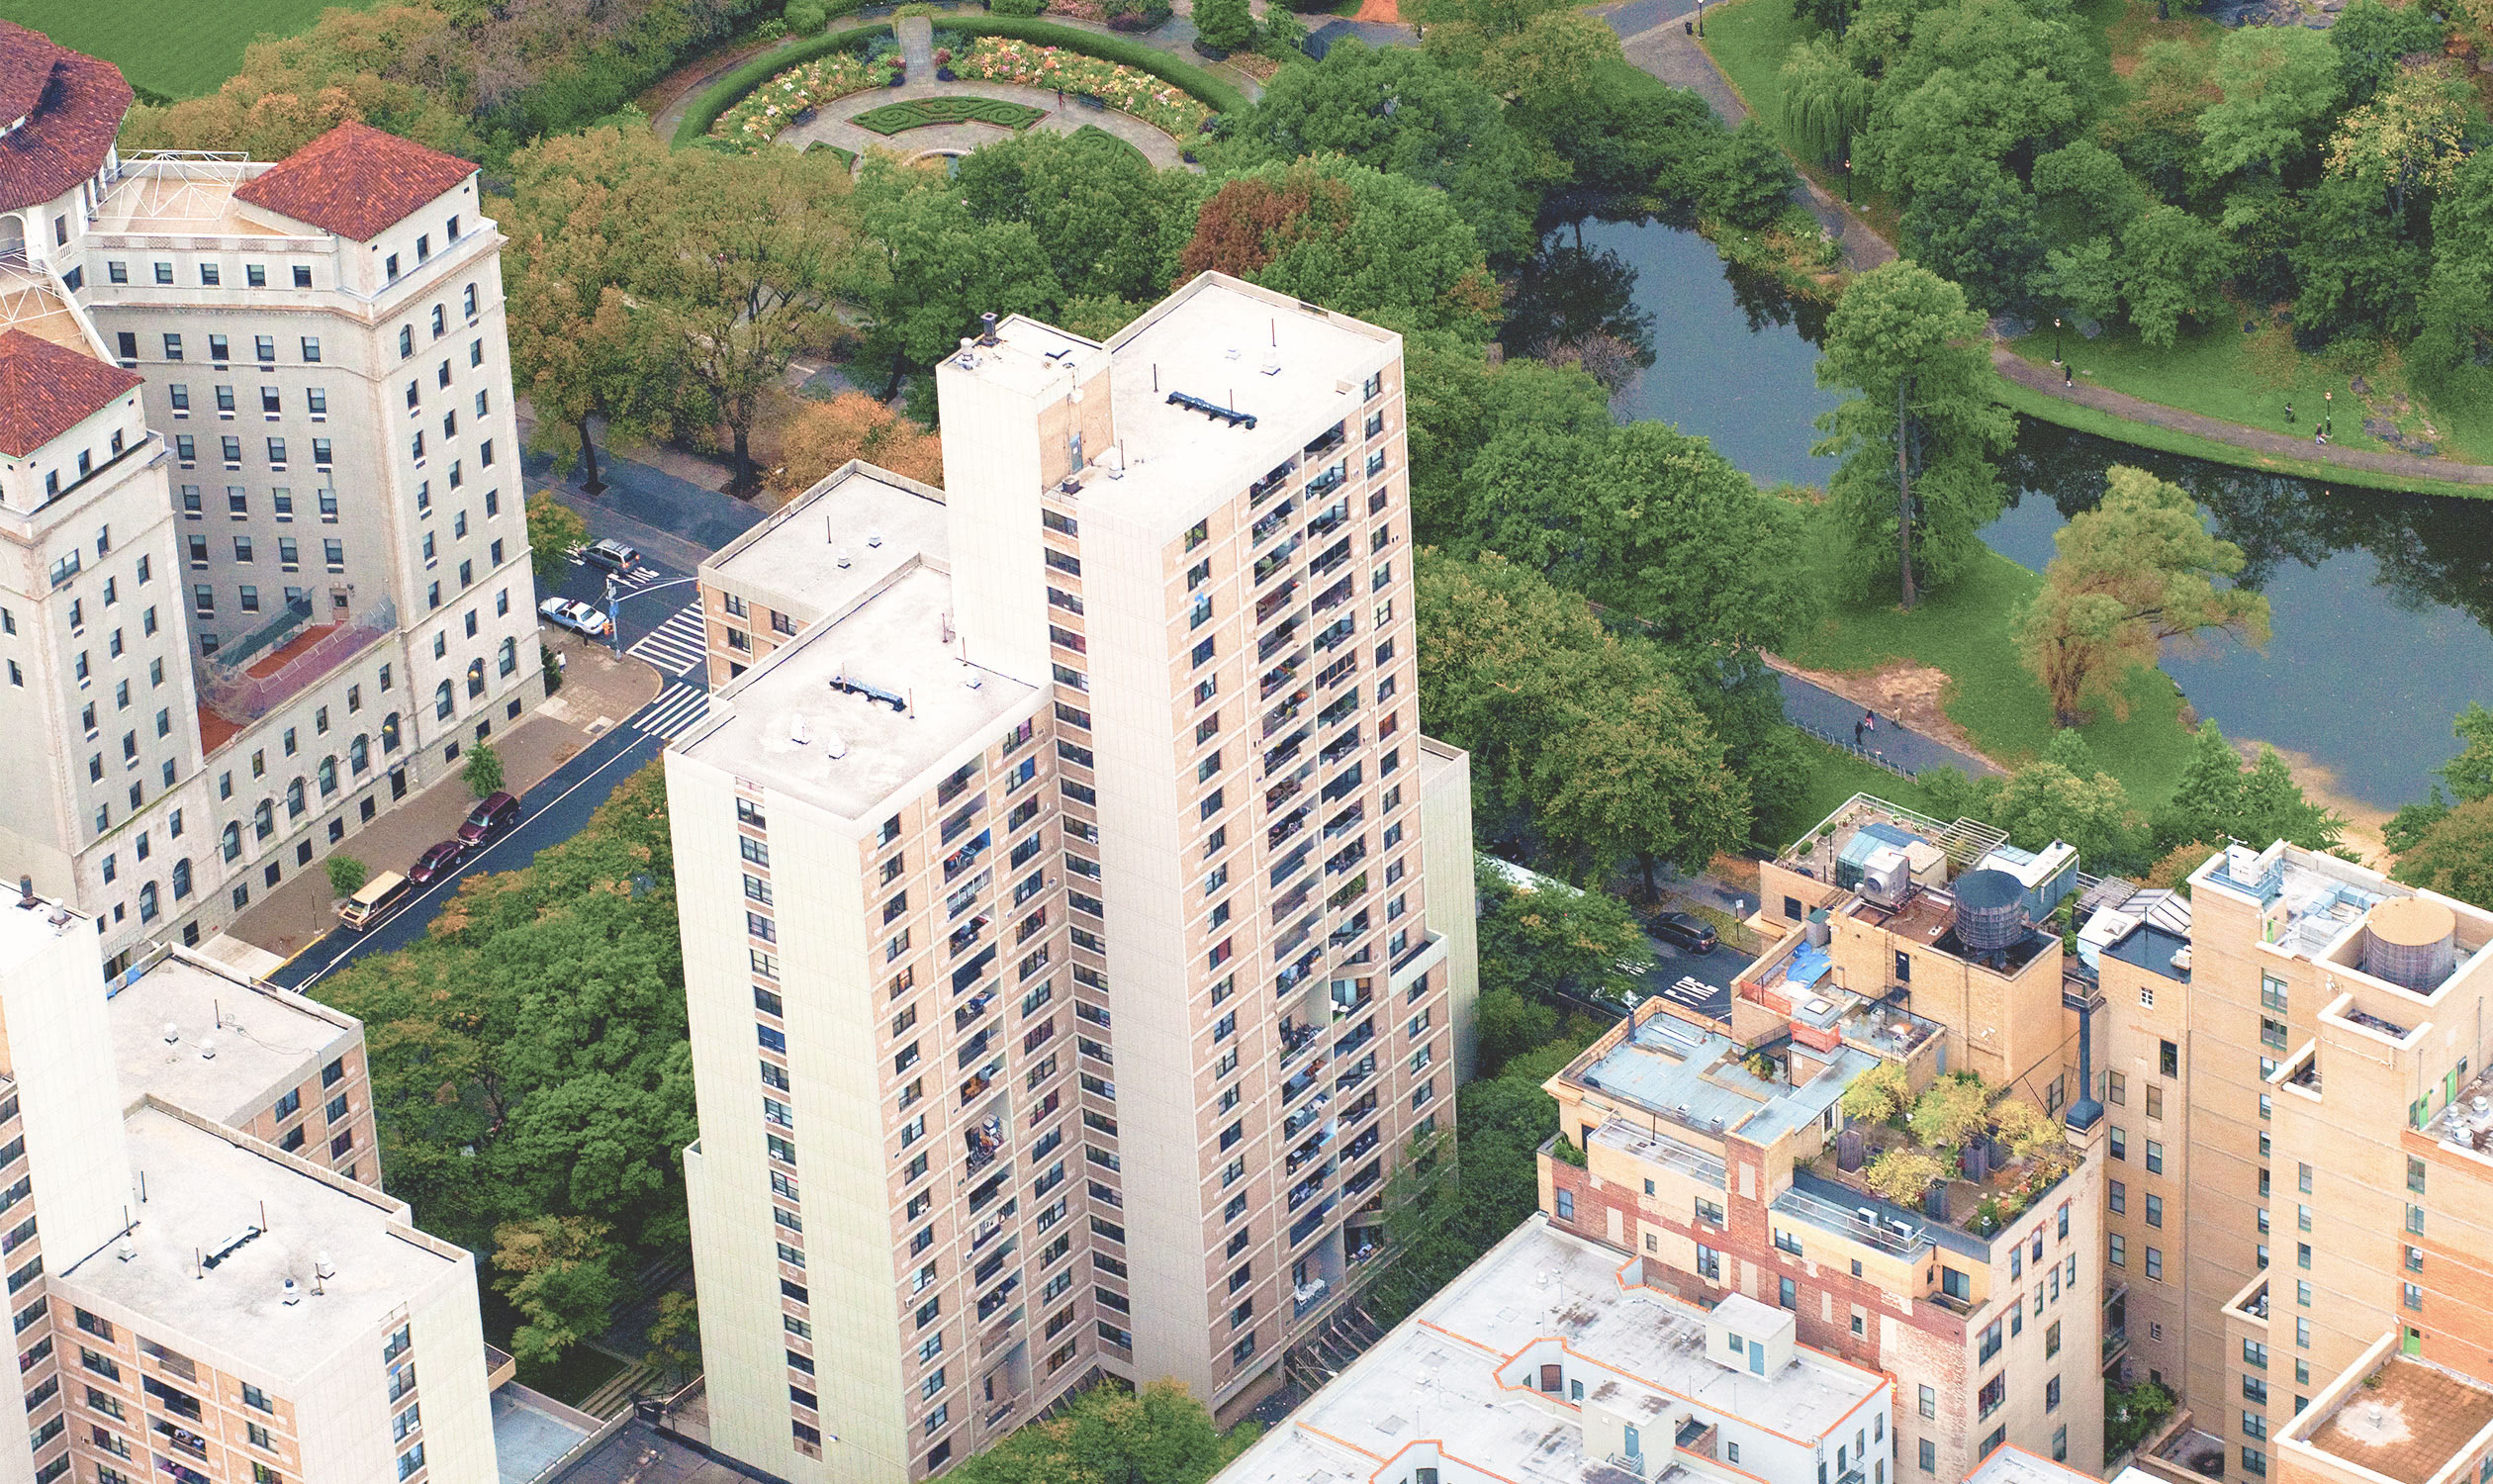 An aerial view of Lakeview Apartments overlooking Central Park.